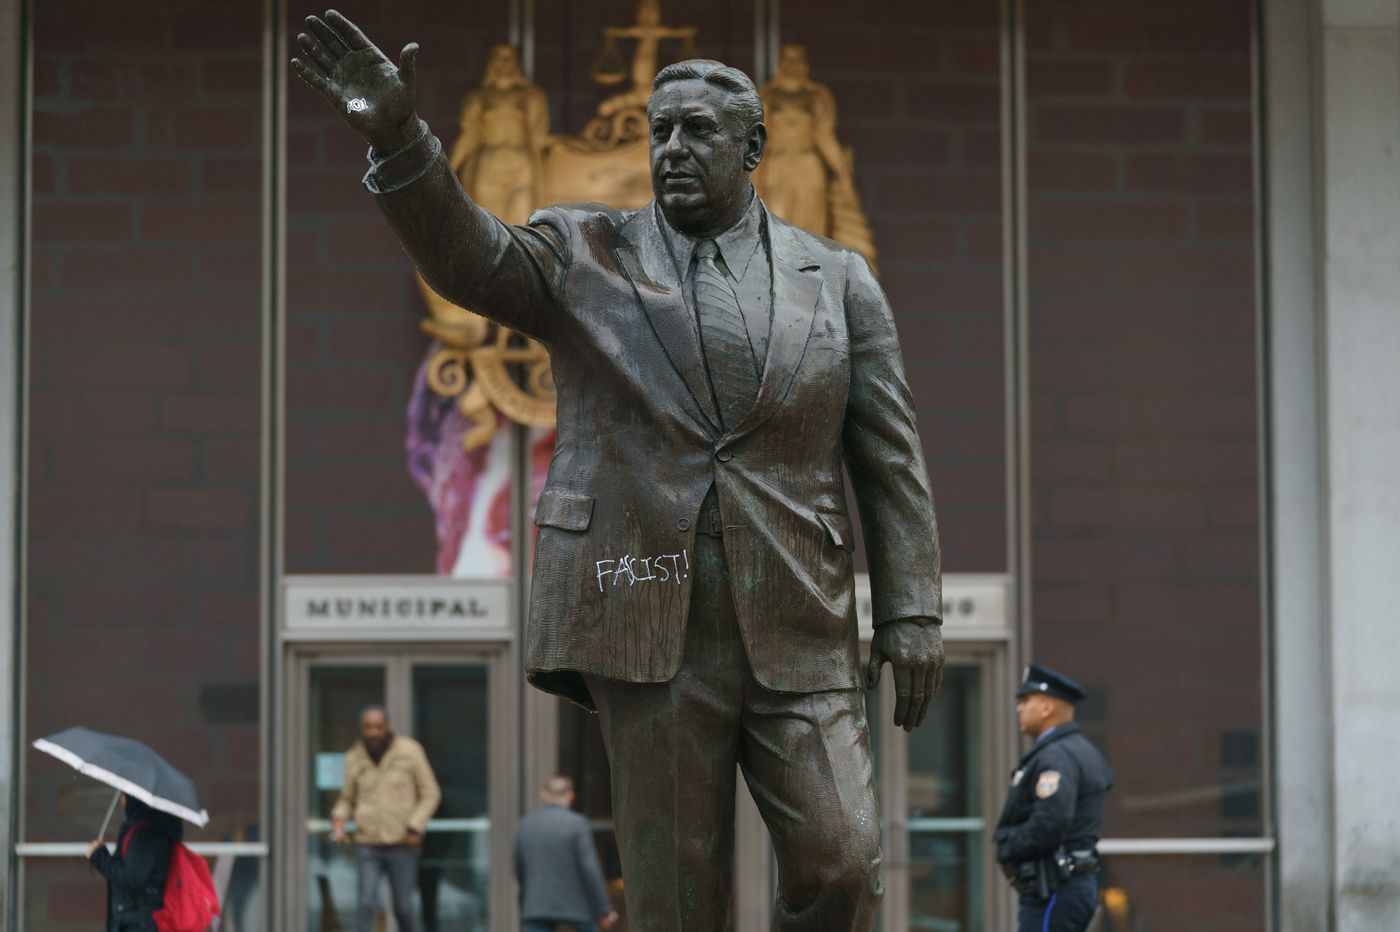 The Frank Rizzo statue's future is bungled yet again | Opinion